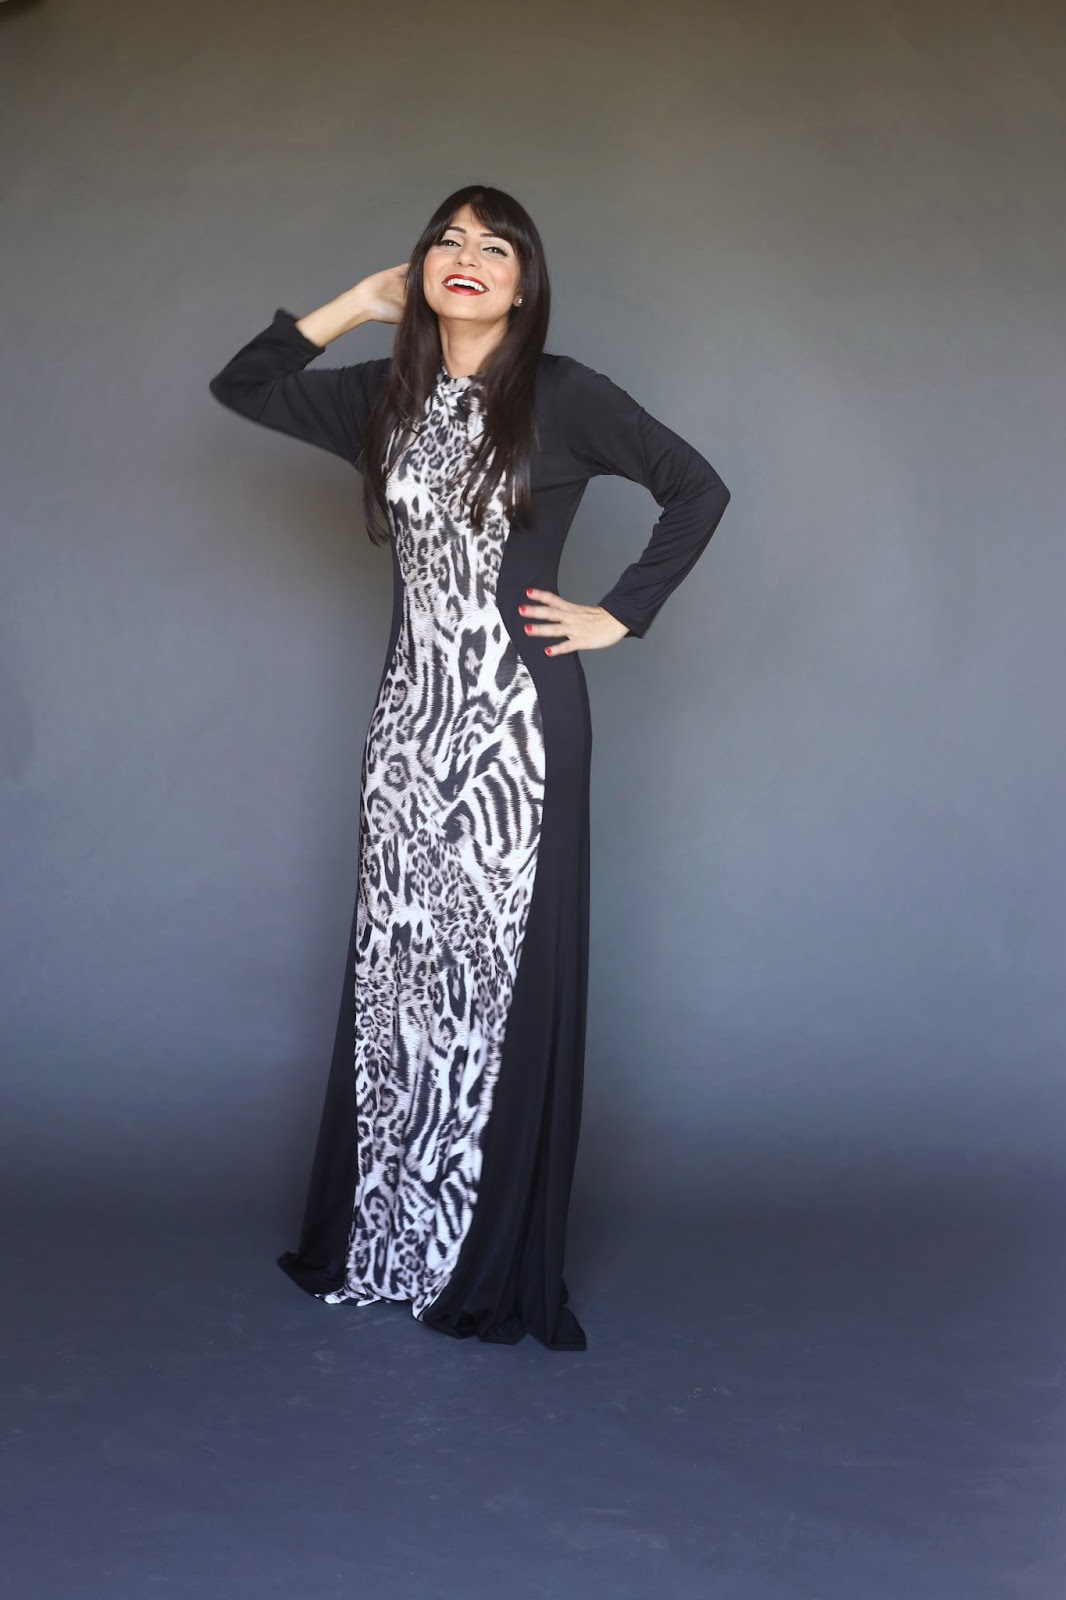 Sexy modest long sleeve maxi dress with center leopard print panel hijab tznius fashion style Mode-sty